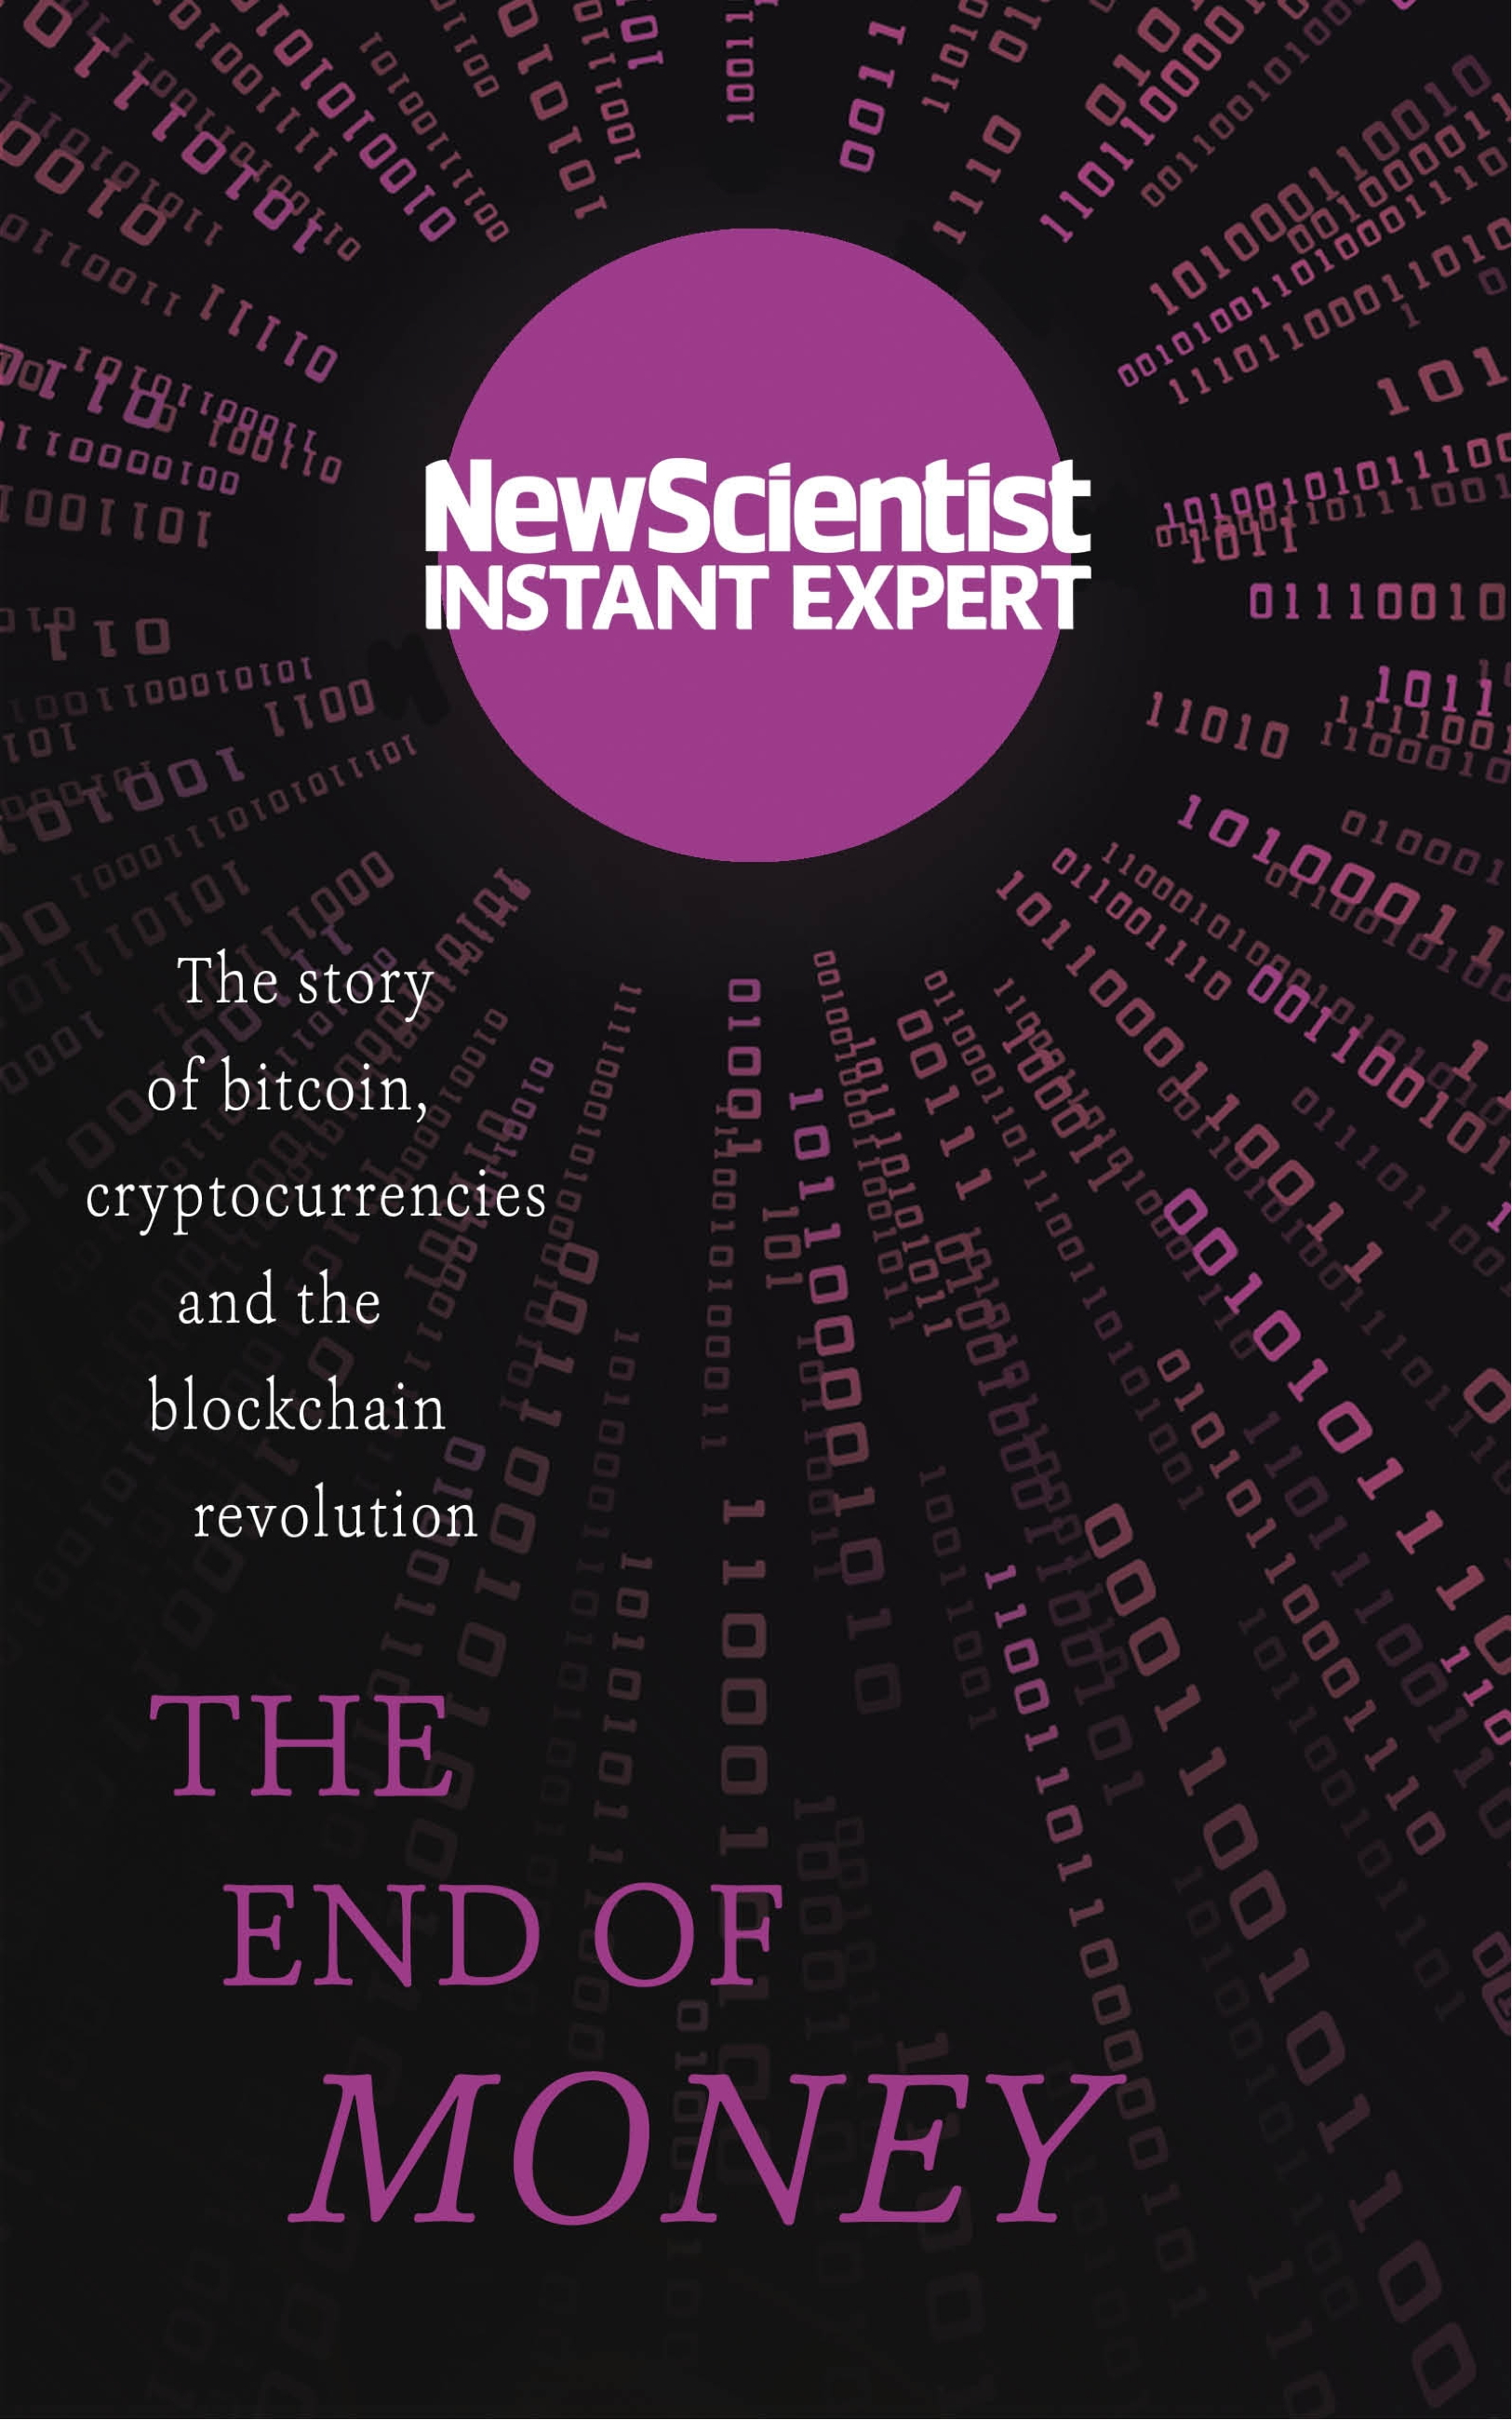 Download Ebook The End of Money by New Scientist Pdf